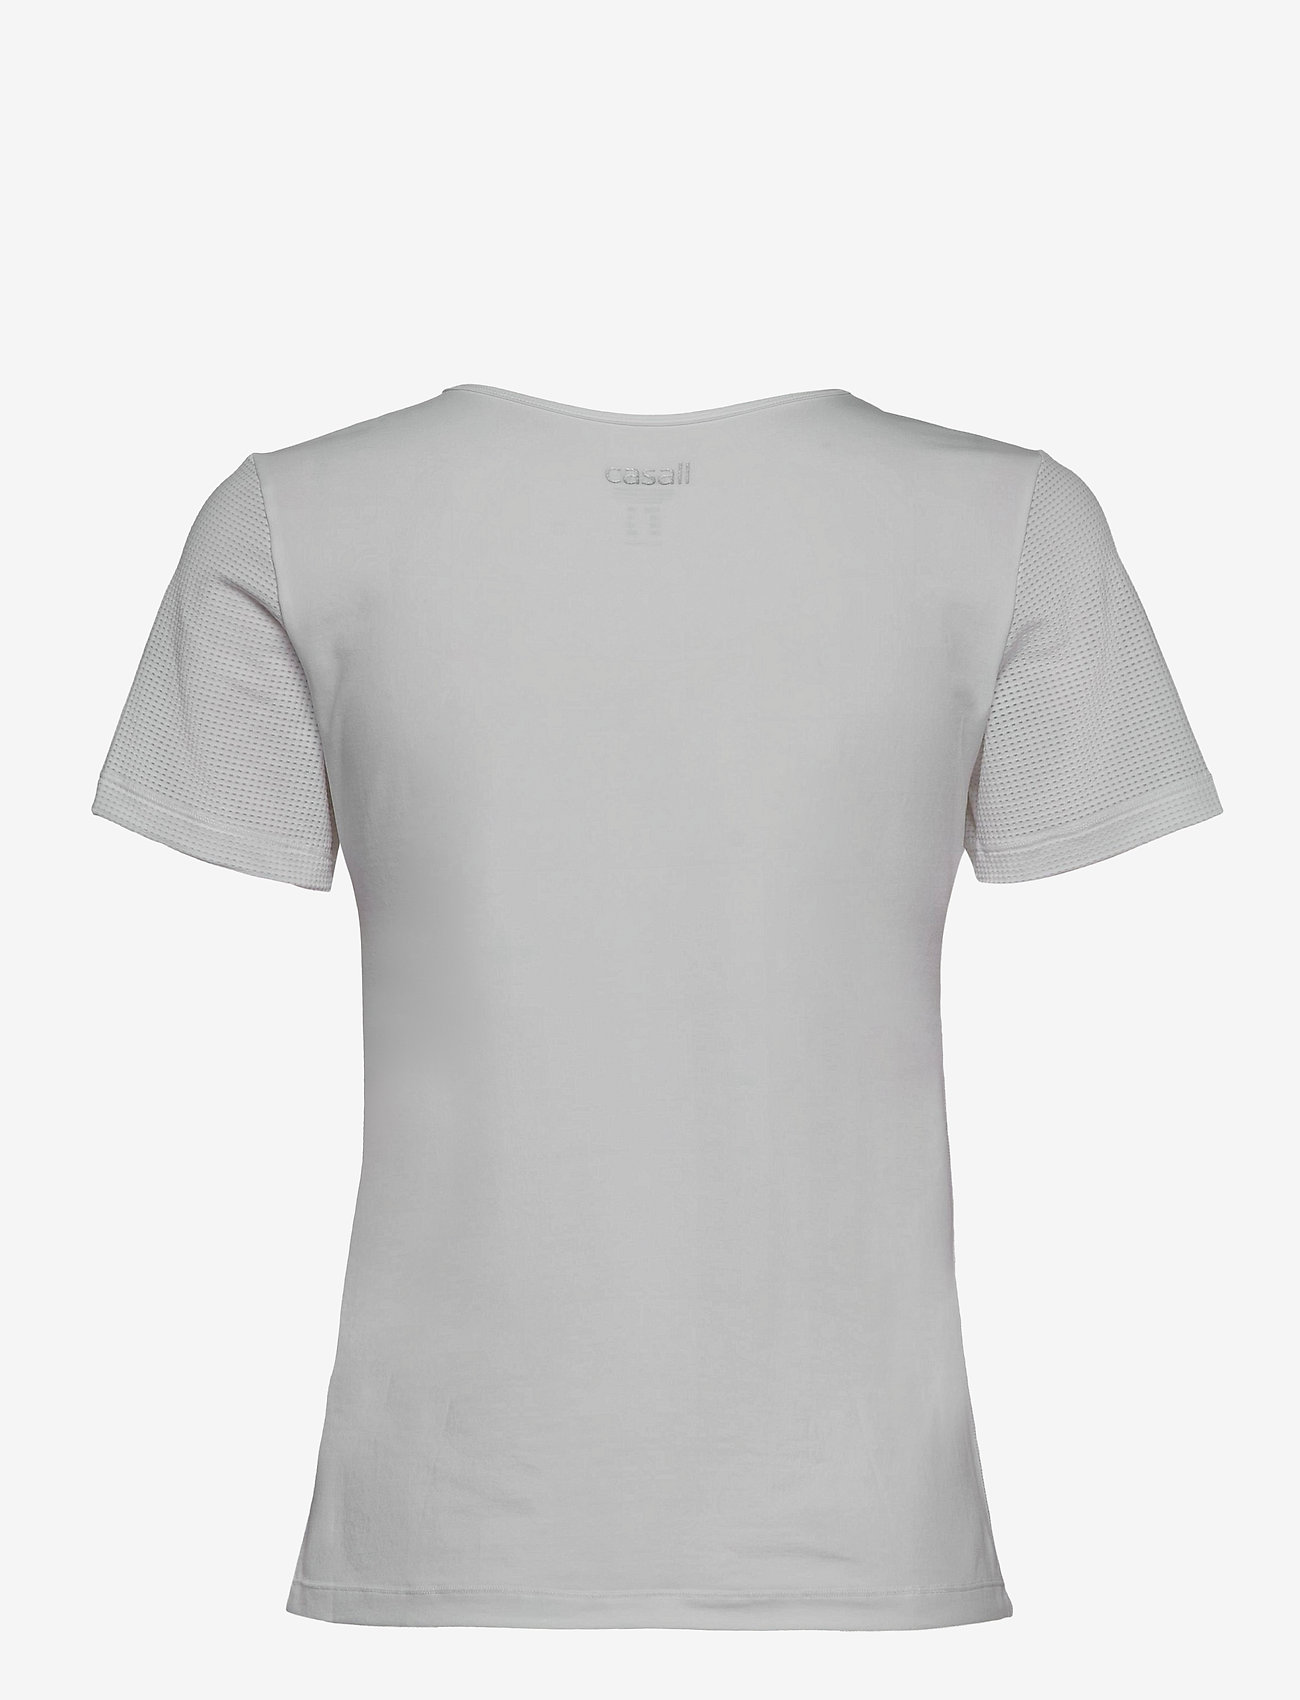 Casall - Iconic Tee - t-shirty - white - 1